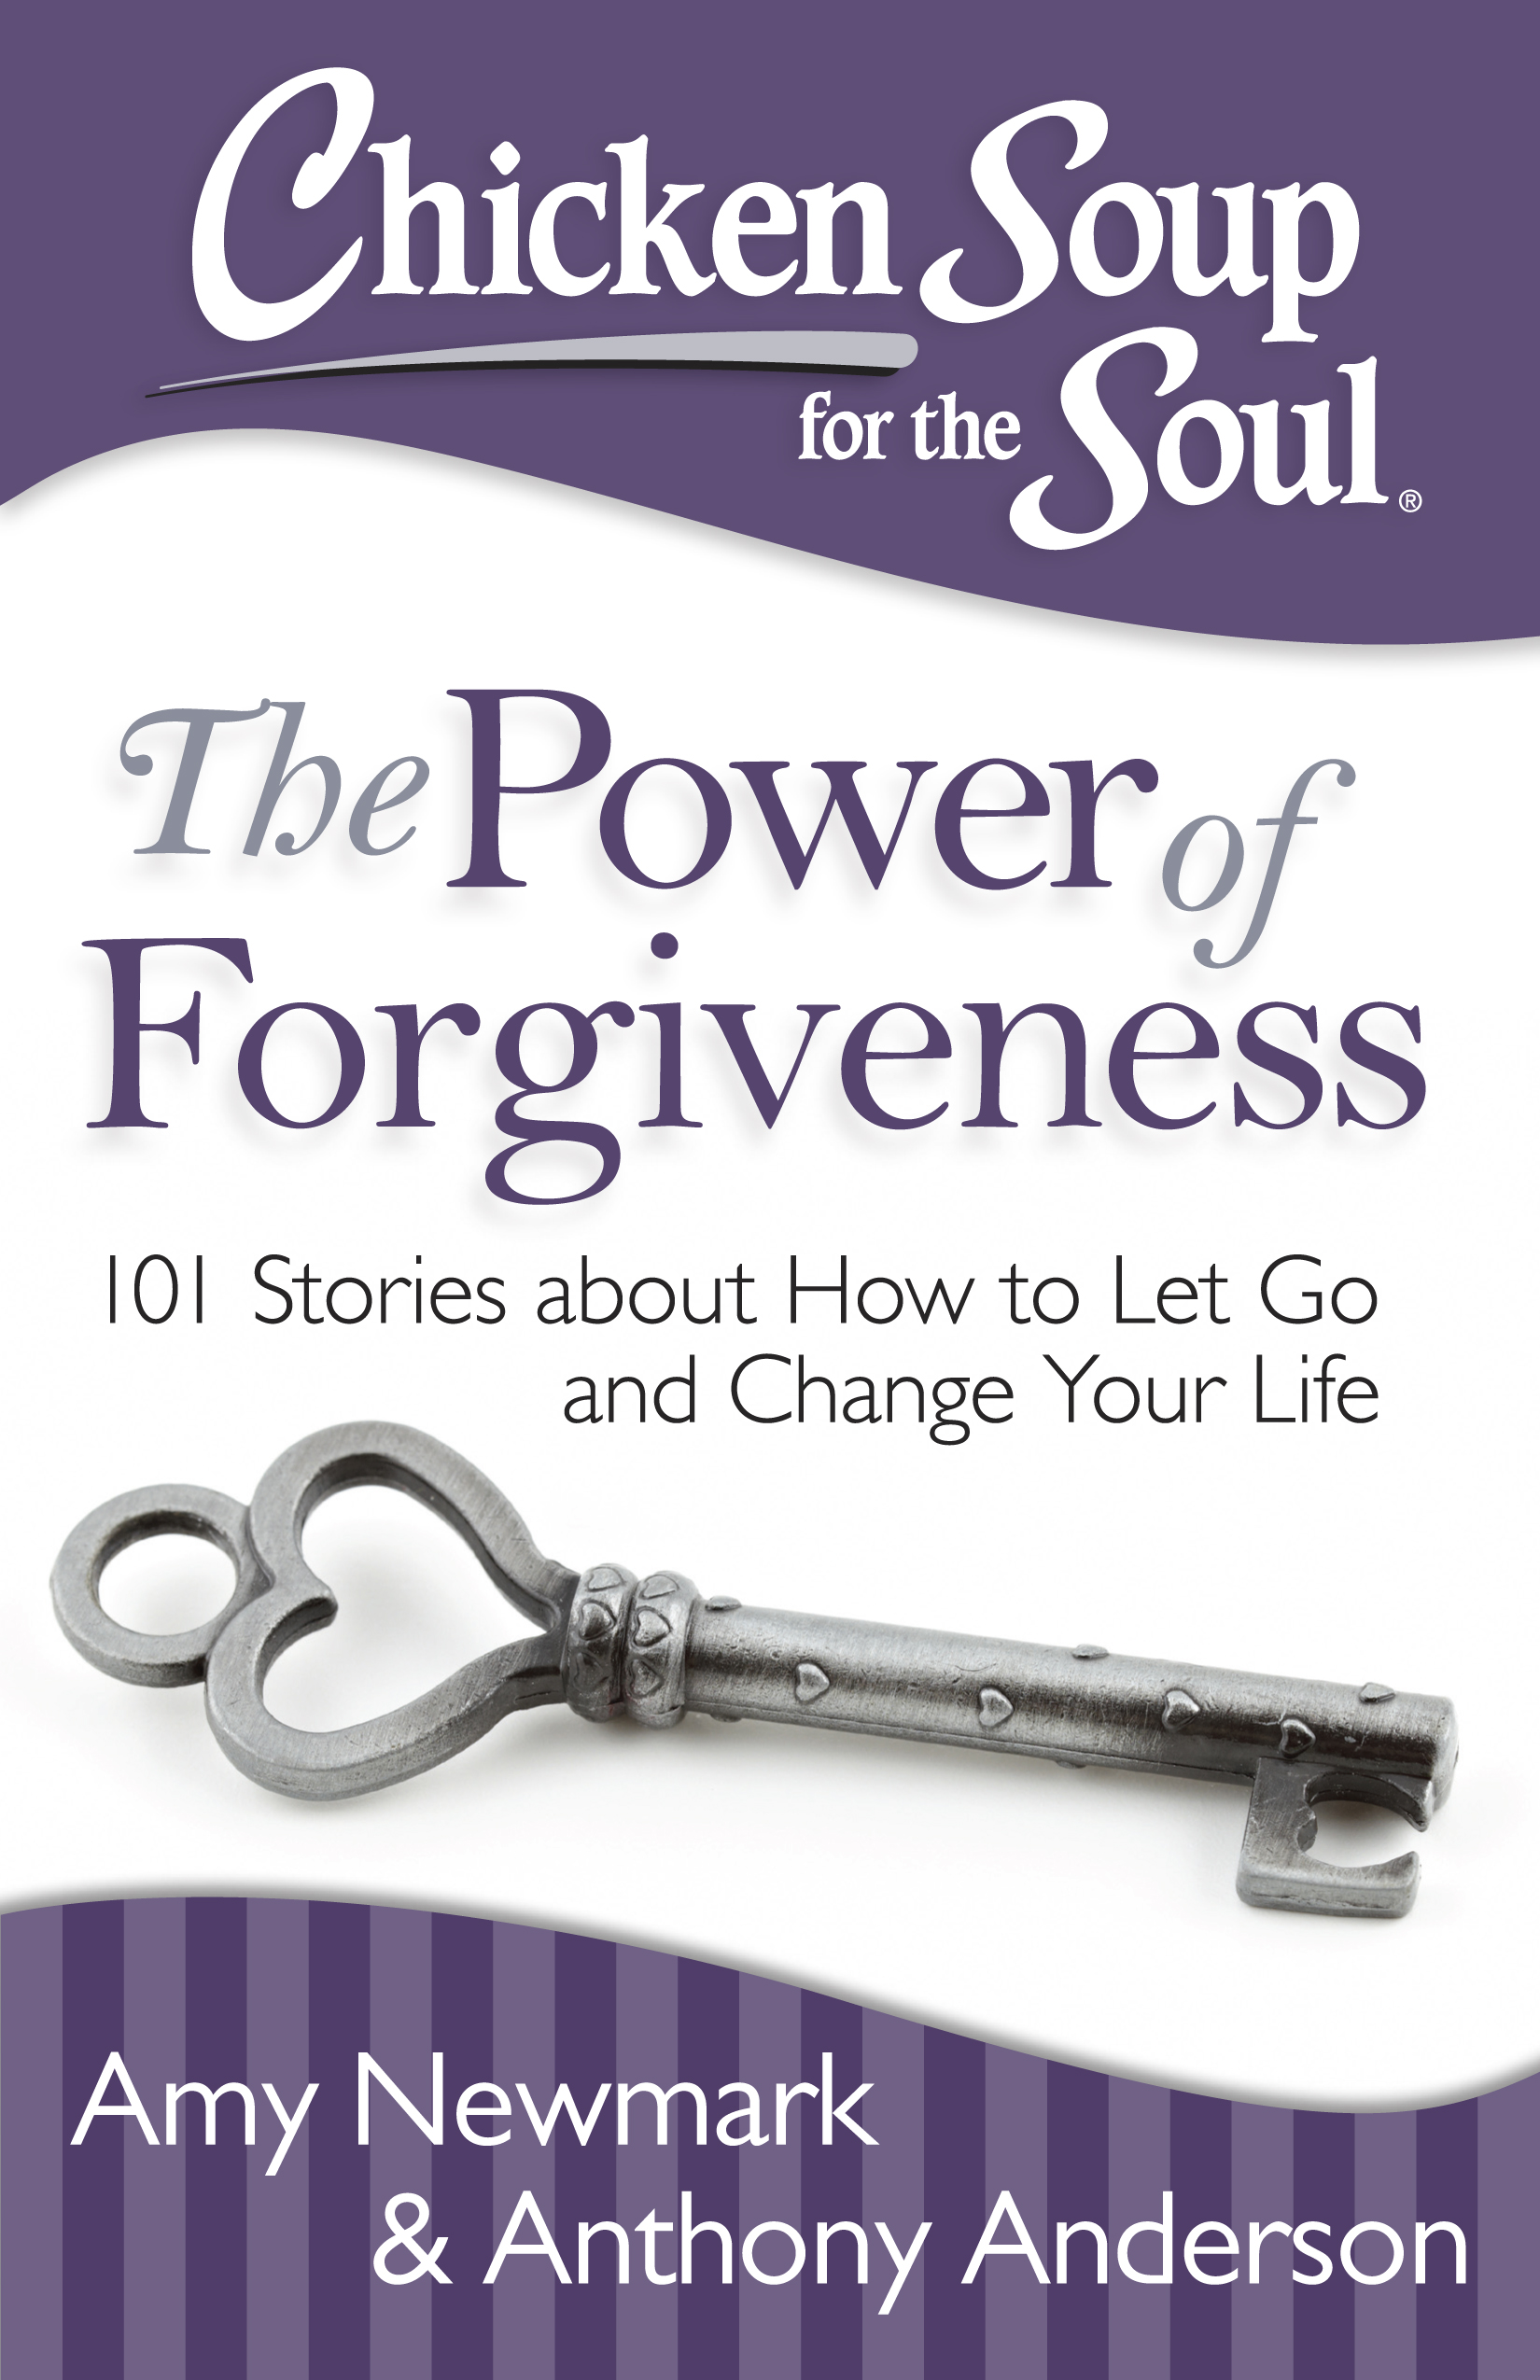 Chicken Soup For The Soul The Power Of Forgiveness Giveaway - 3 Prizes!